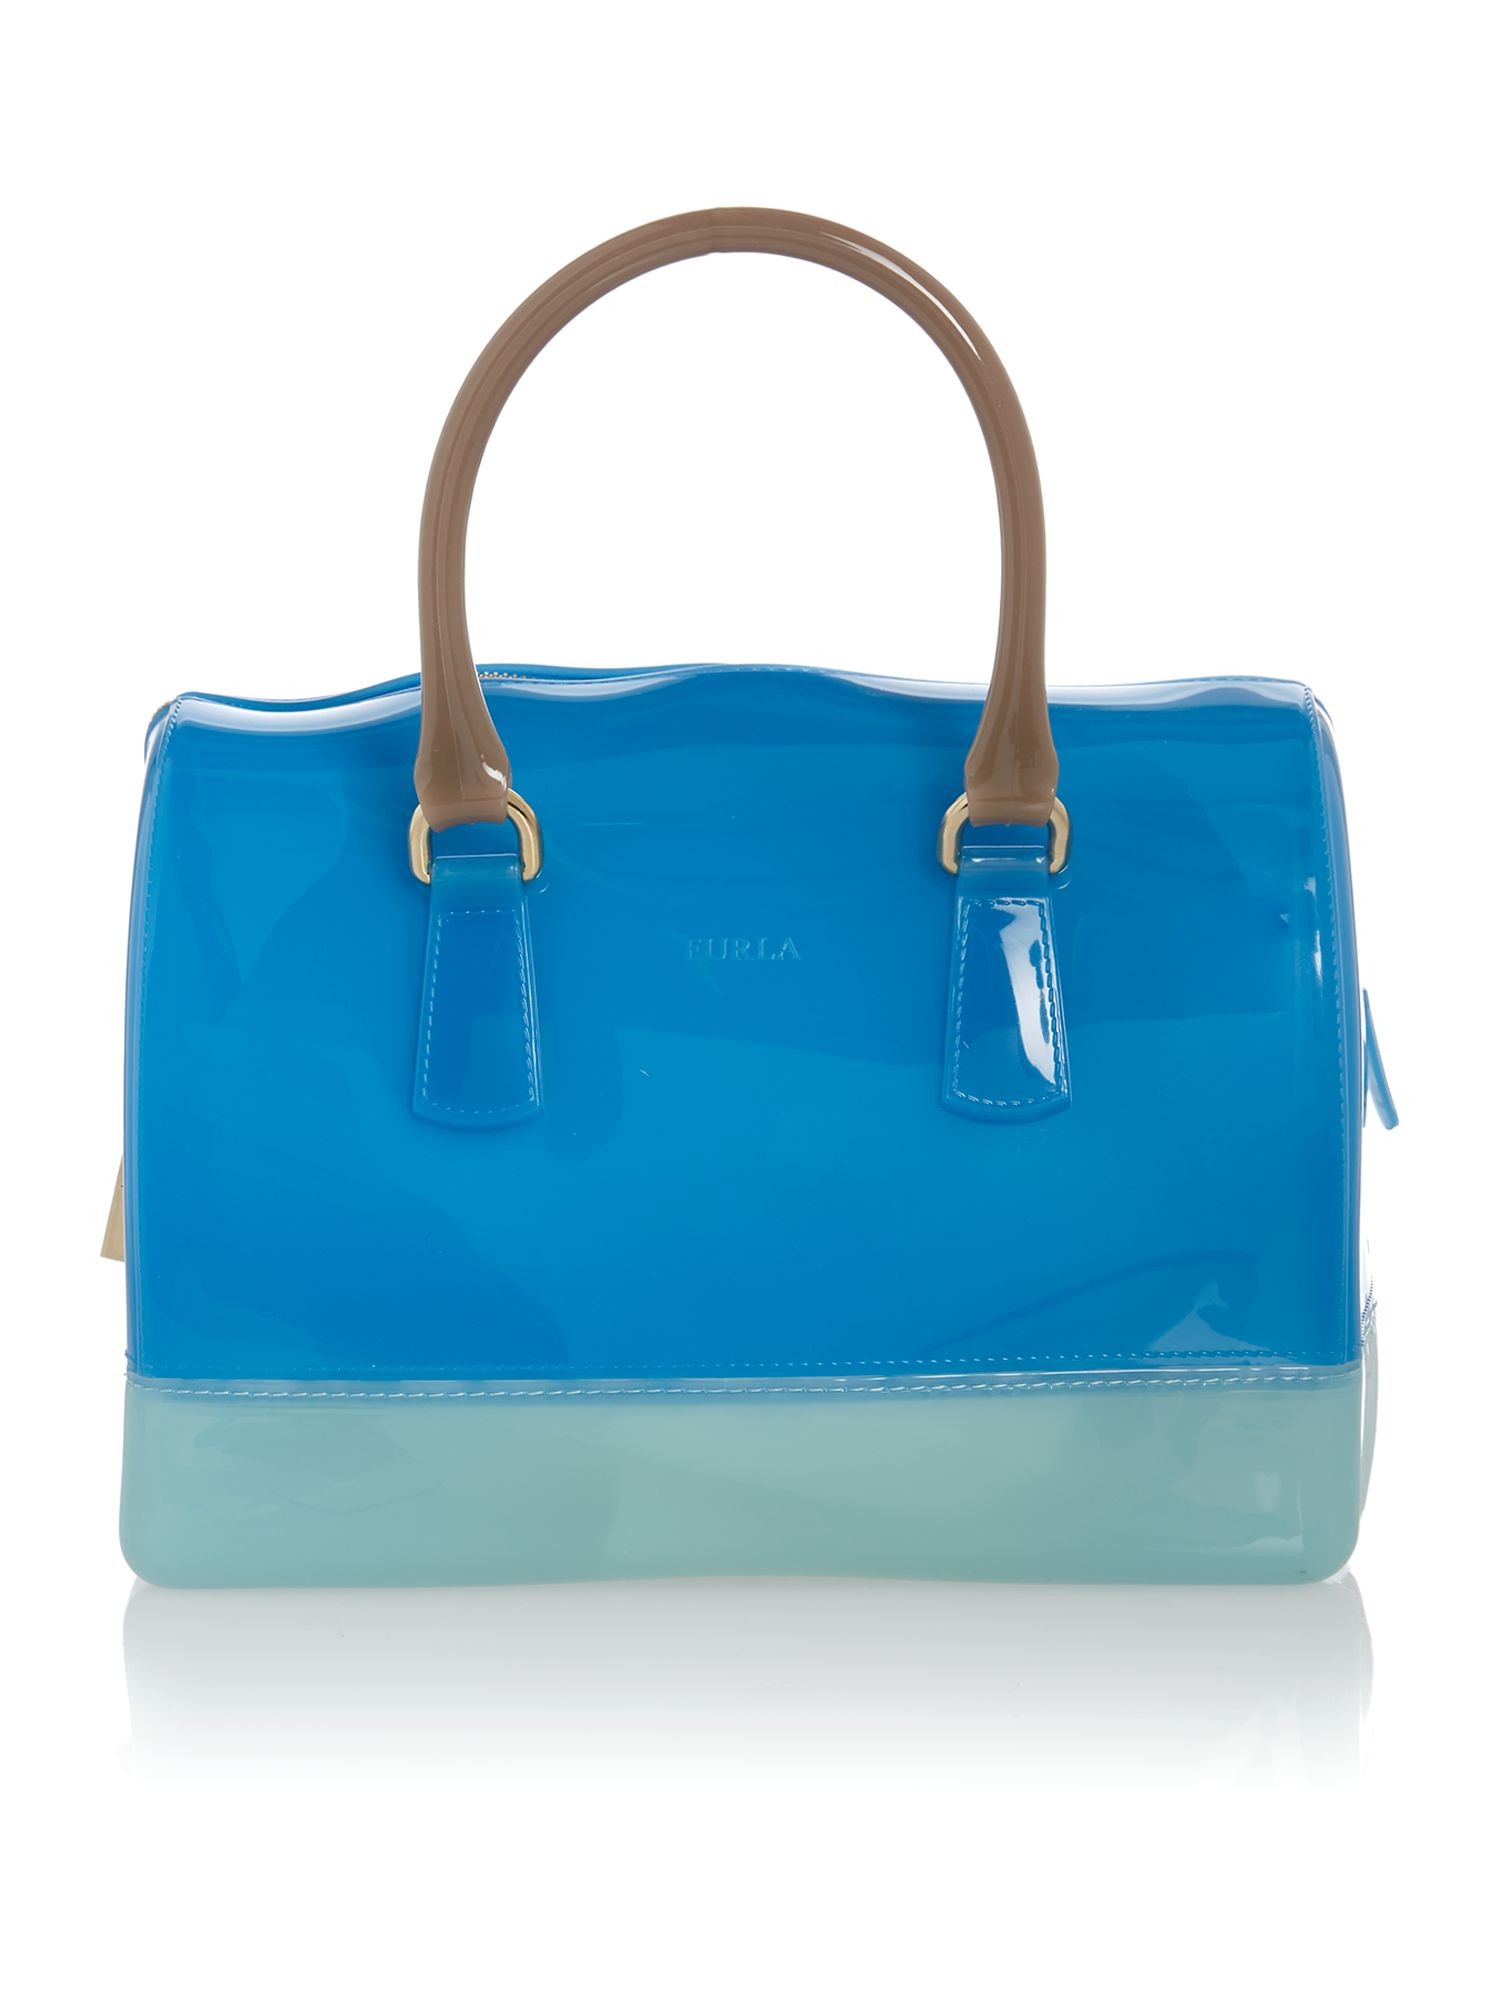 Candy blue bowling bag